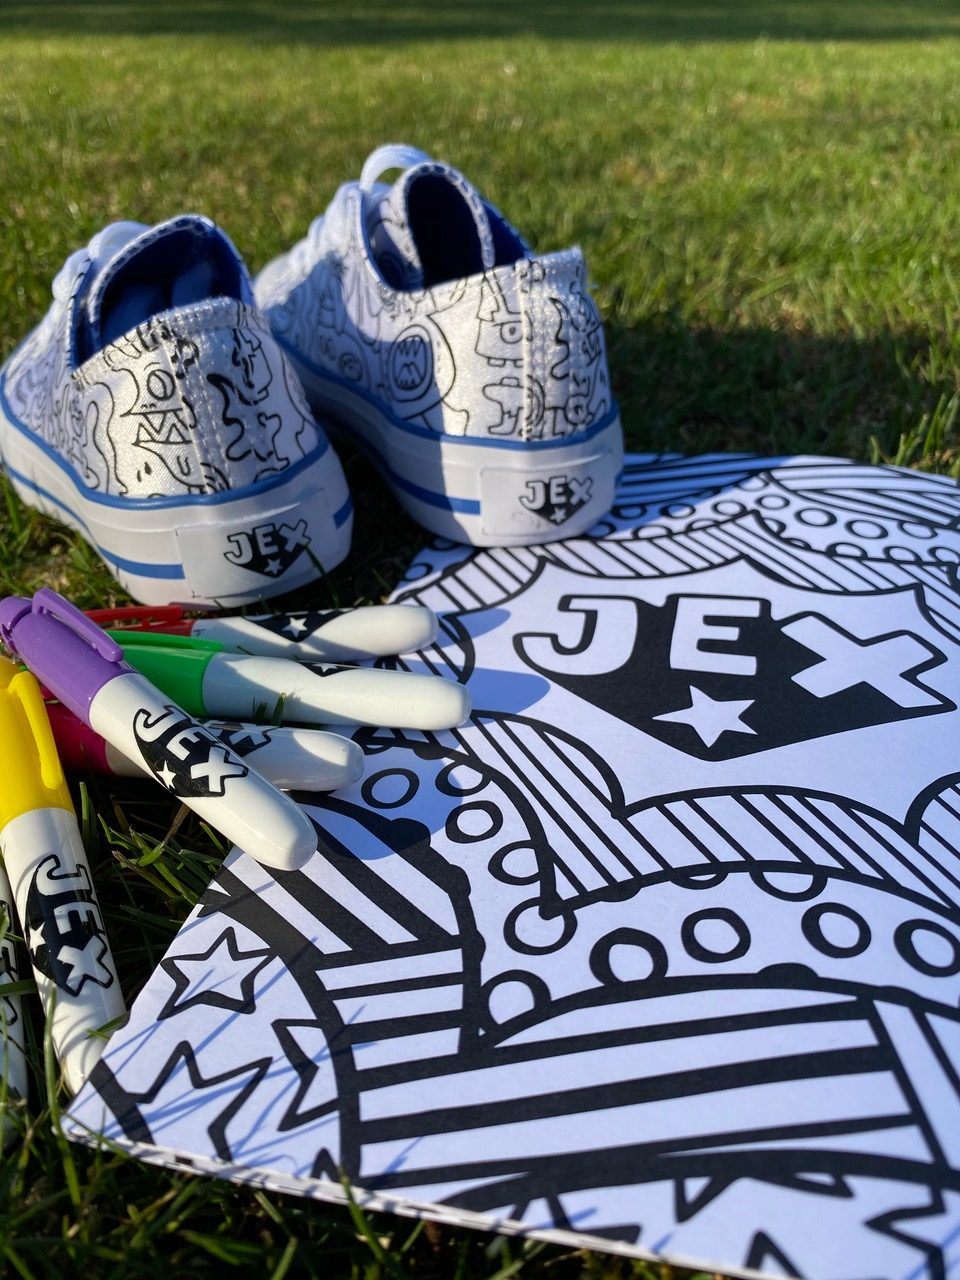 Jex shoes – possibly the coolest shoes made to date?